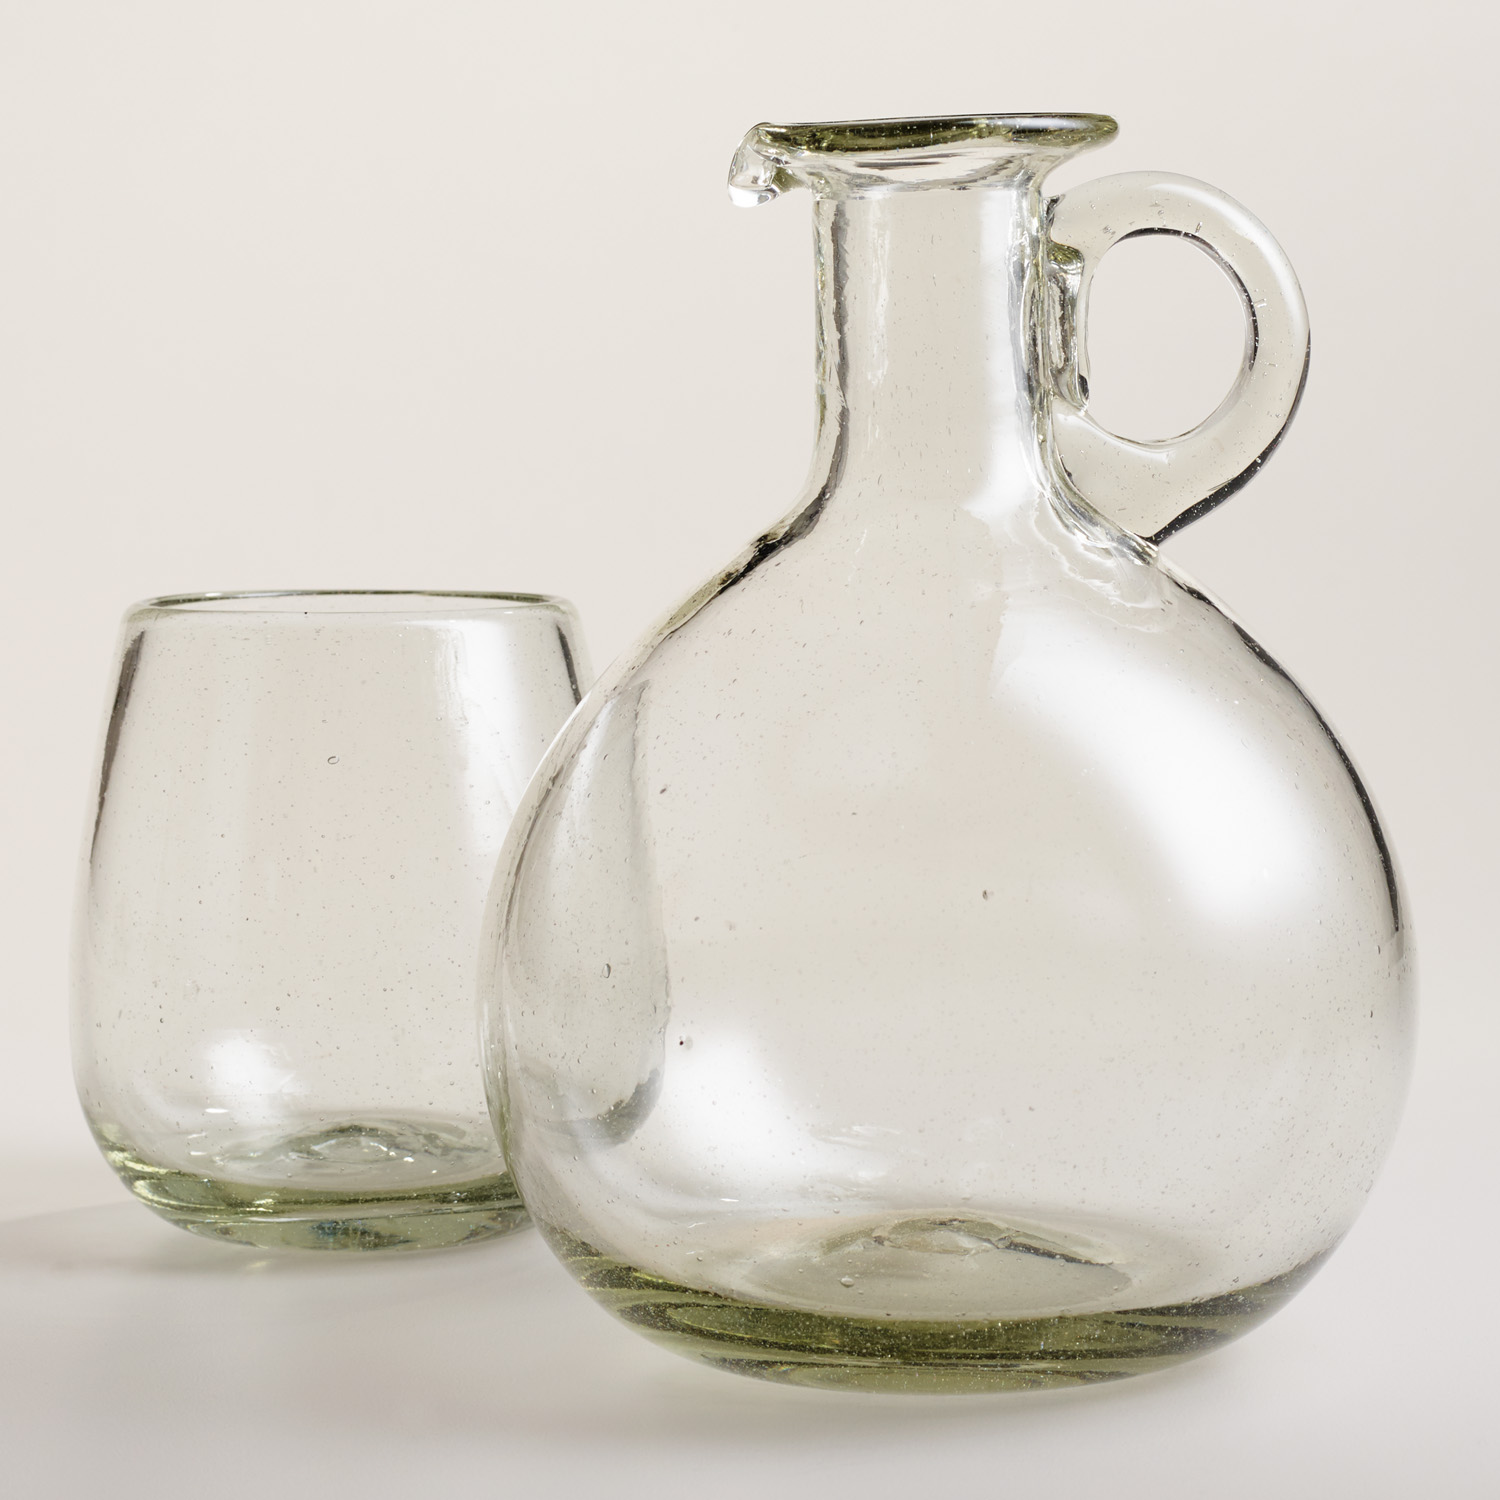 509413_509412_RECYCLED_CARAFE_FAMILY_HRR.jpg